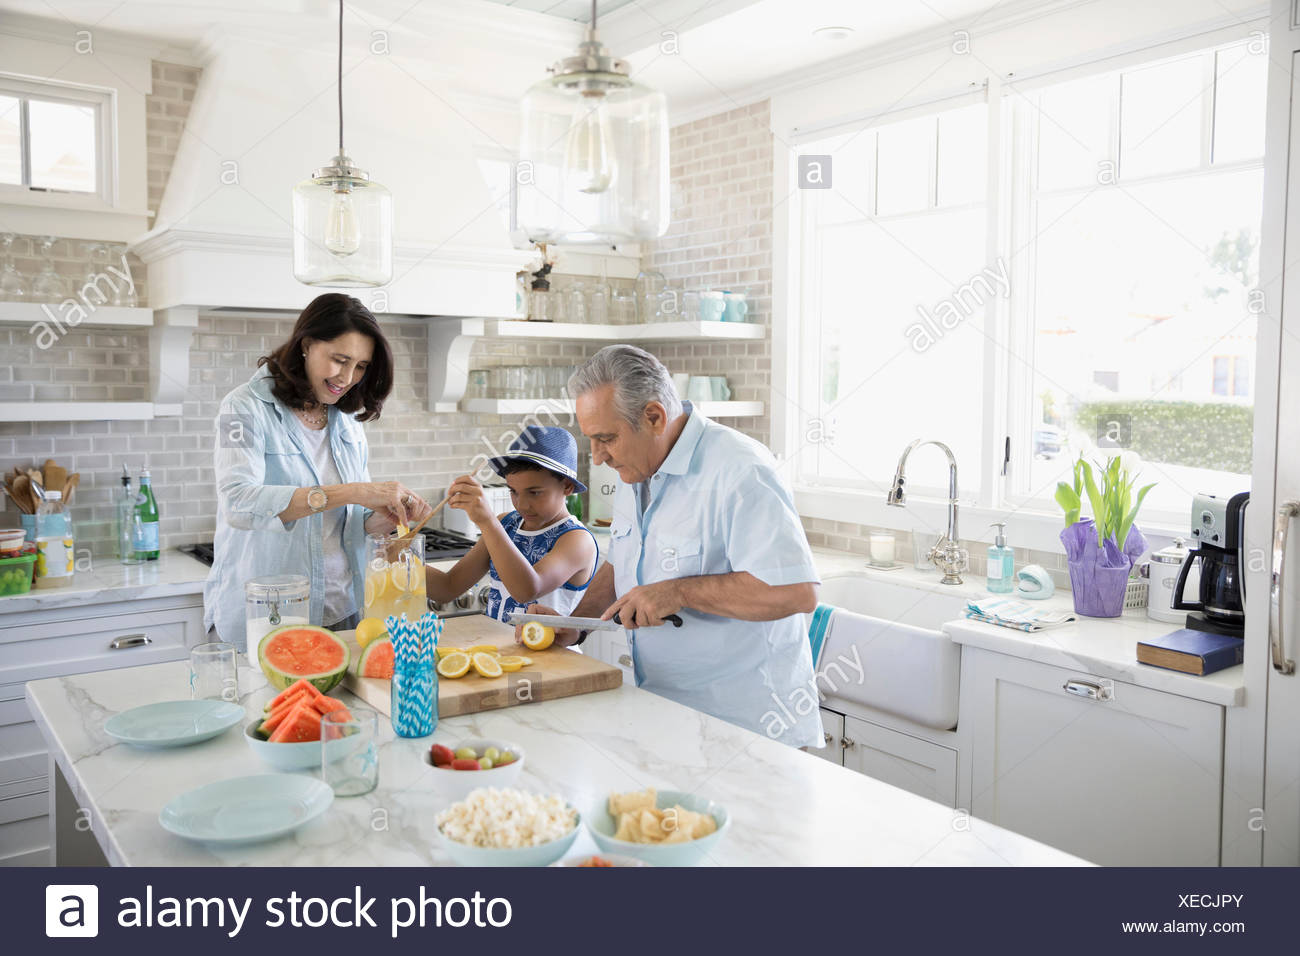 Grandparents and grandson making lemonade in beach house kitchen - Stock Image